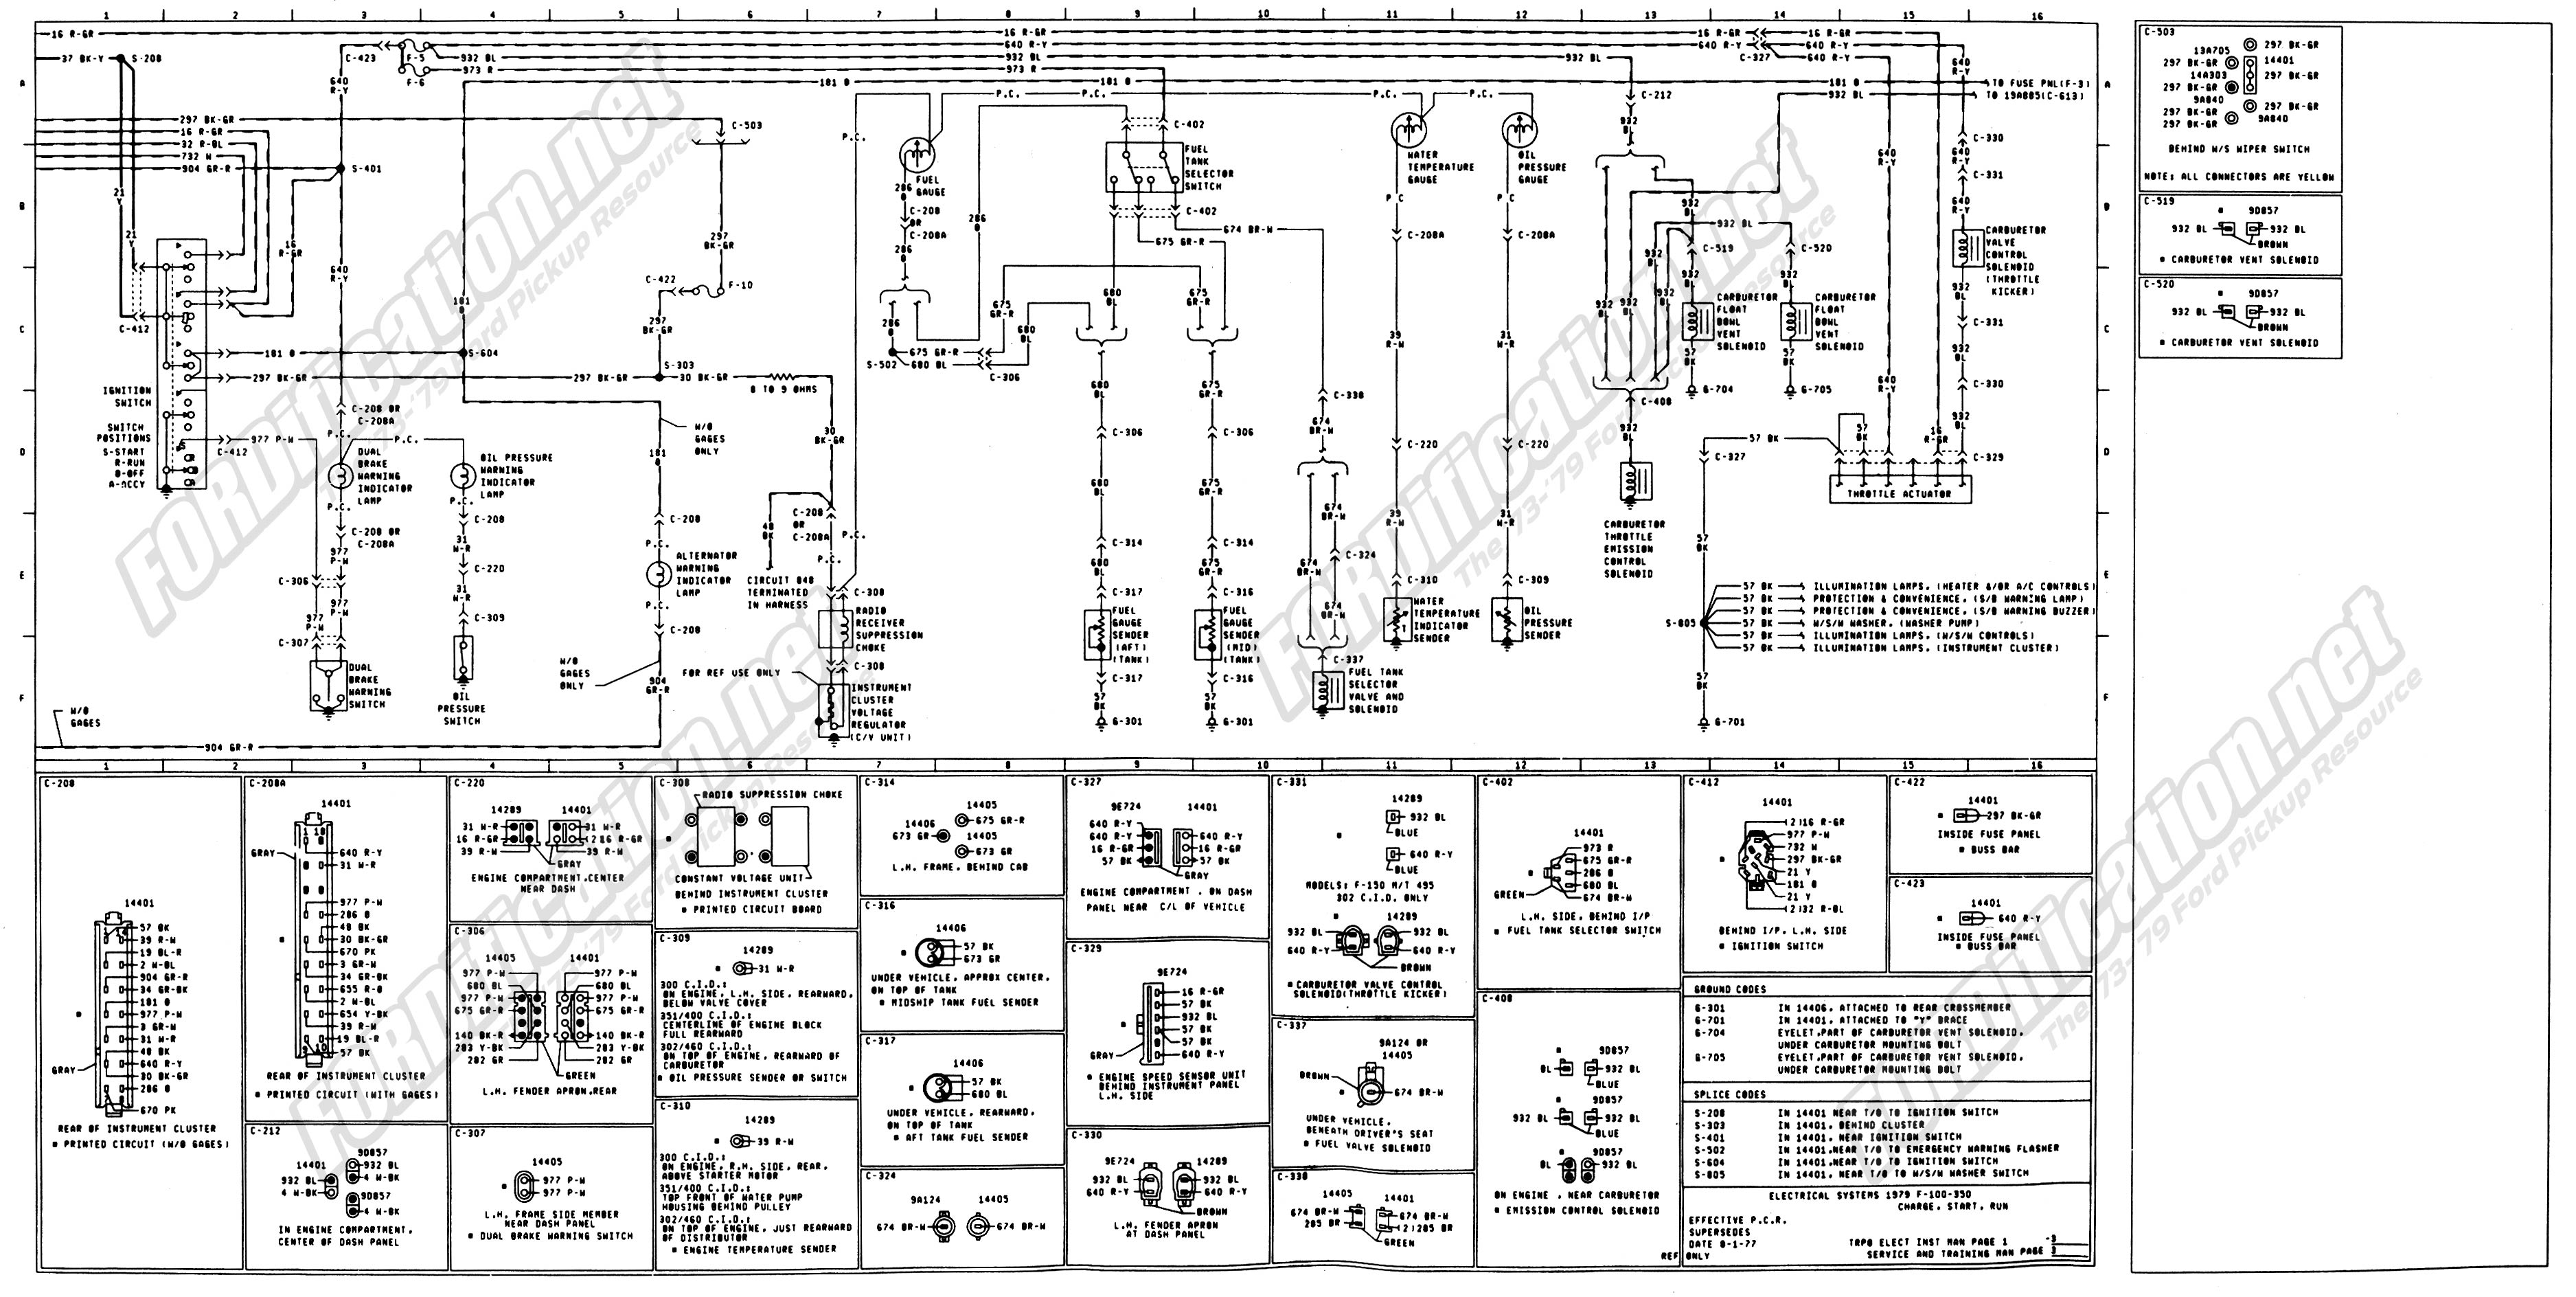 1973 1979 ford truck wiring diagrams schematics fordification net rh fordification net 73-79 ford truck wiring harness 73-79 ford truck wiring harness